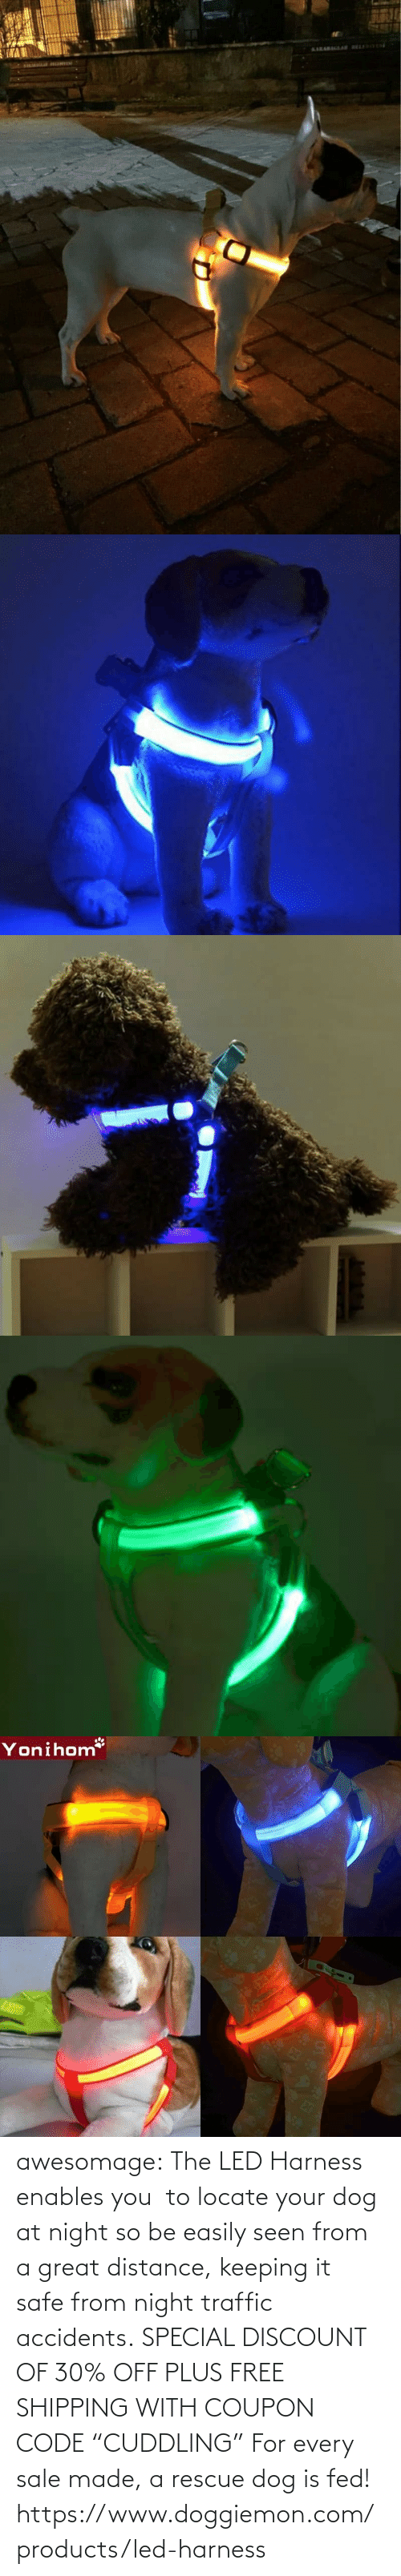 "rescue dog: awesomage:   The LED Harness enables you  to locate your dog at night so be easily seen from a great distance, keeping it safe from night traffic accidents. SPECIAL DISCOUNT OF 30% OFF PLUS FREE SHIPPING WITH COUPON CODE ""CUDDLING"" For every sale made, a rescue dog is fed!   https://www.doggiemon.com/products/led-harness"